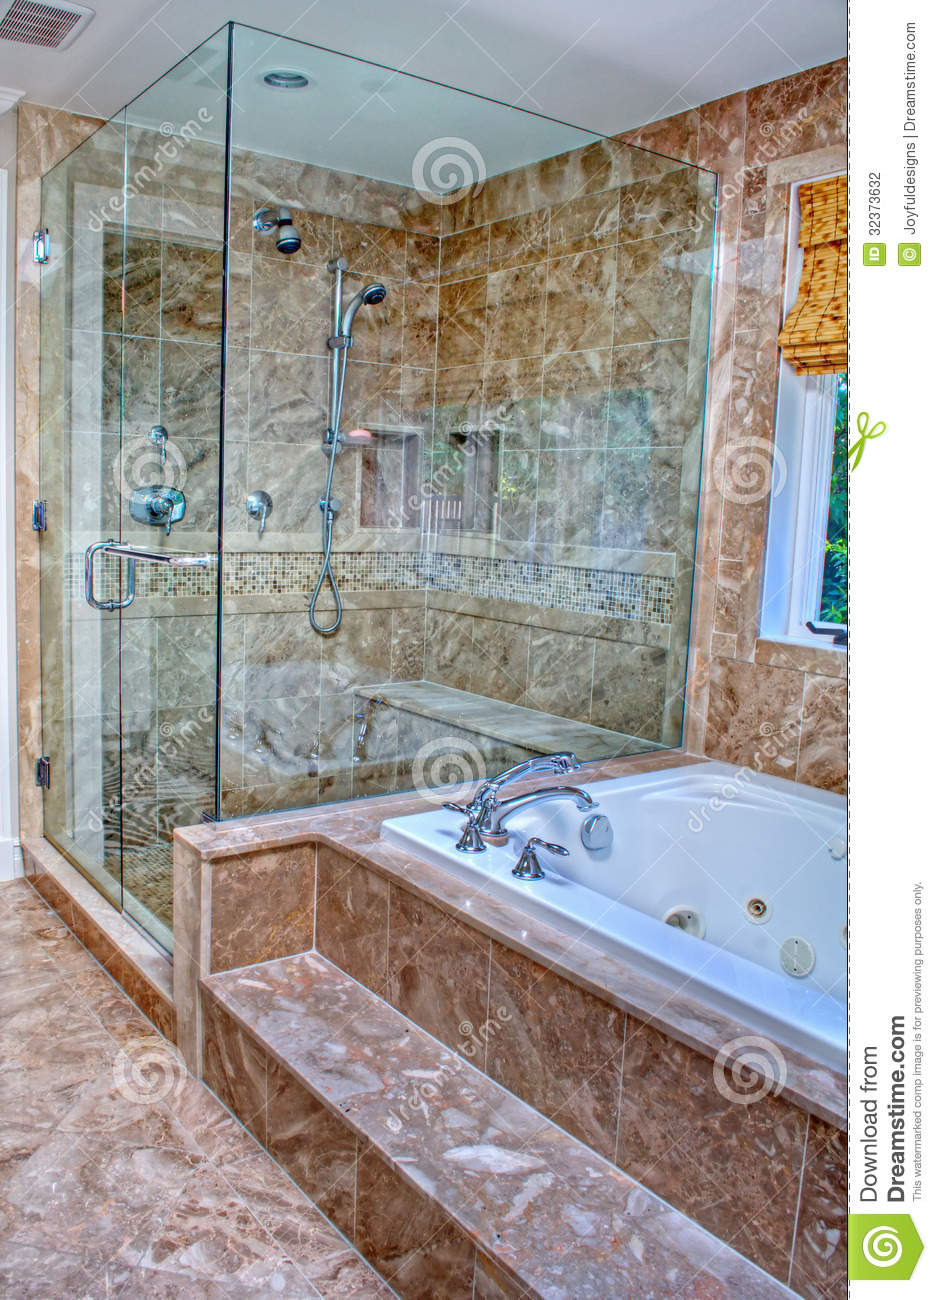 moderne dusche und badewanne im raum stockfotografie bild 32373632. Black Bedroom Furniture Sets. Home Design Ideas